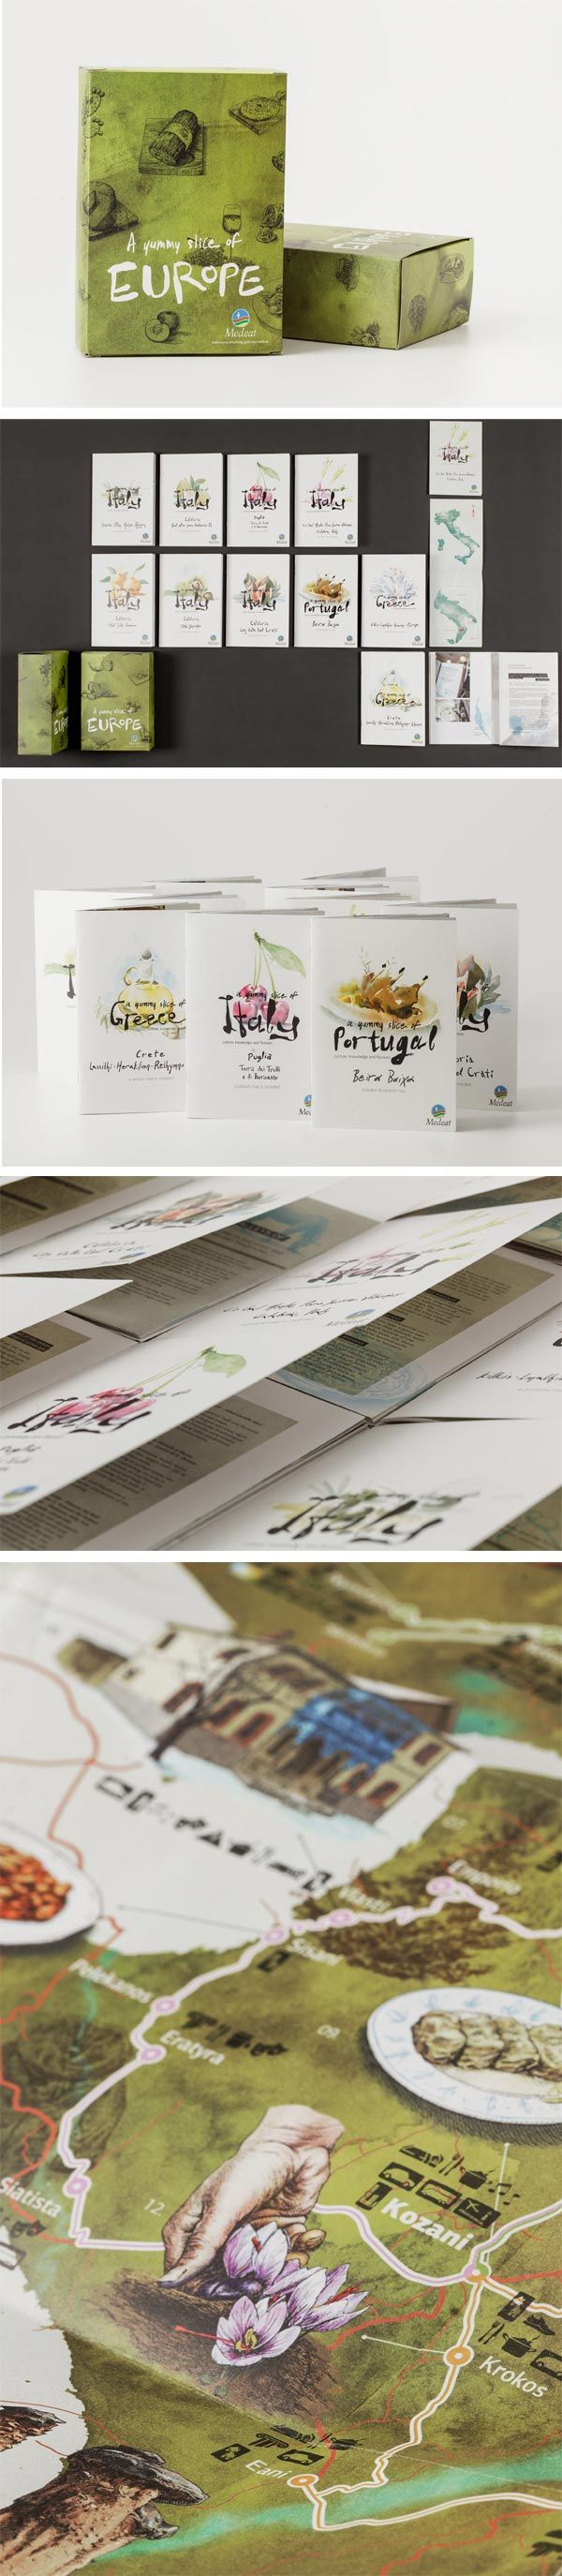 Gastronomy and itinerary maps for MEDeat project  #guides #illustration #maps #leaflet #packaging #exhibition stand